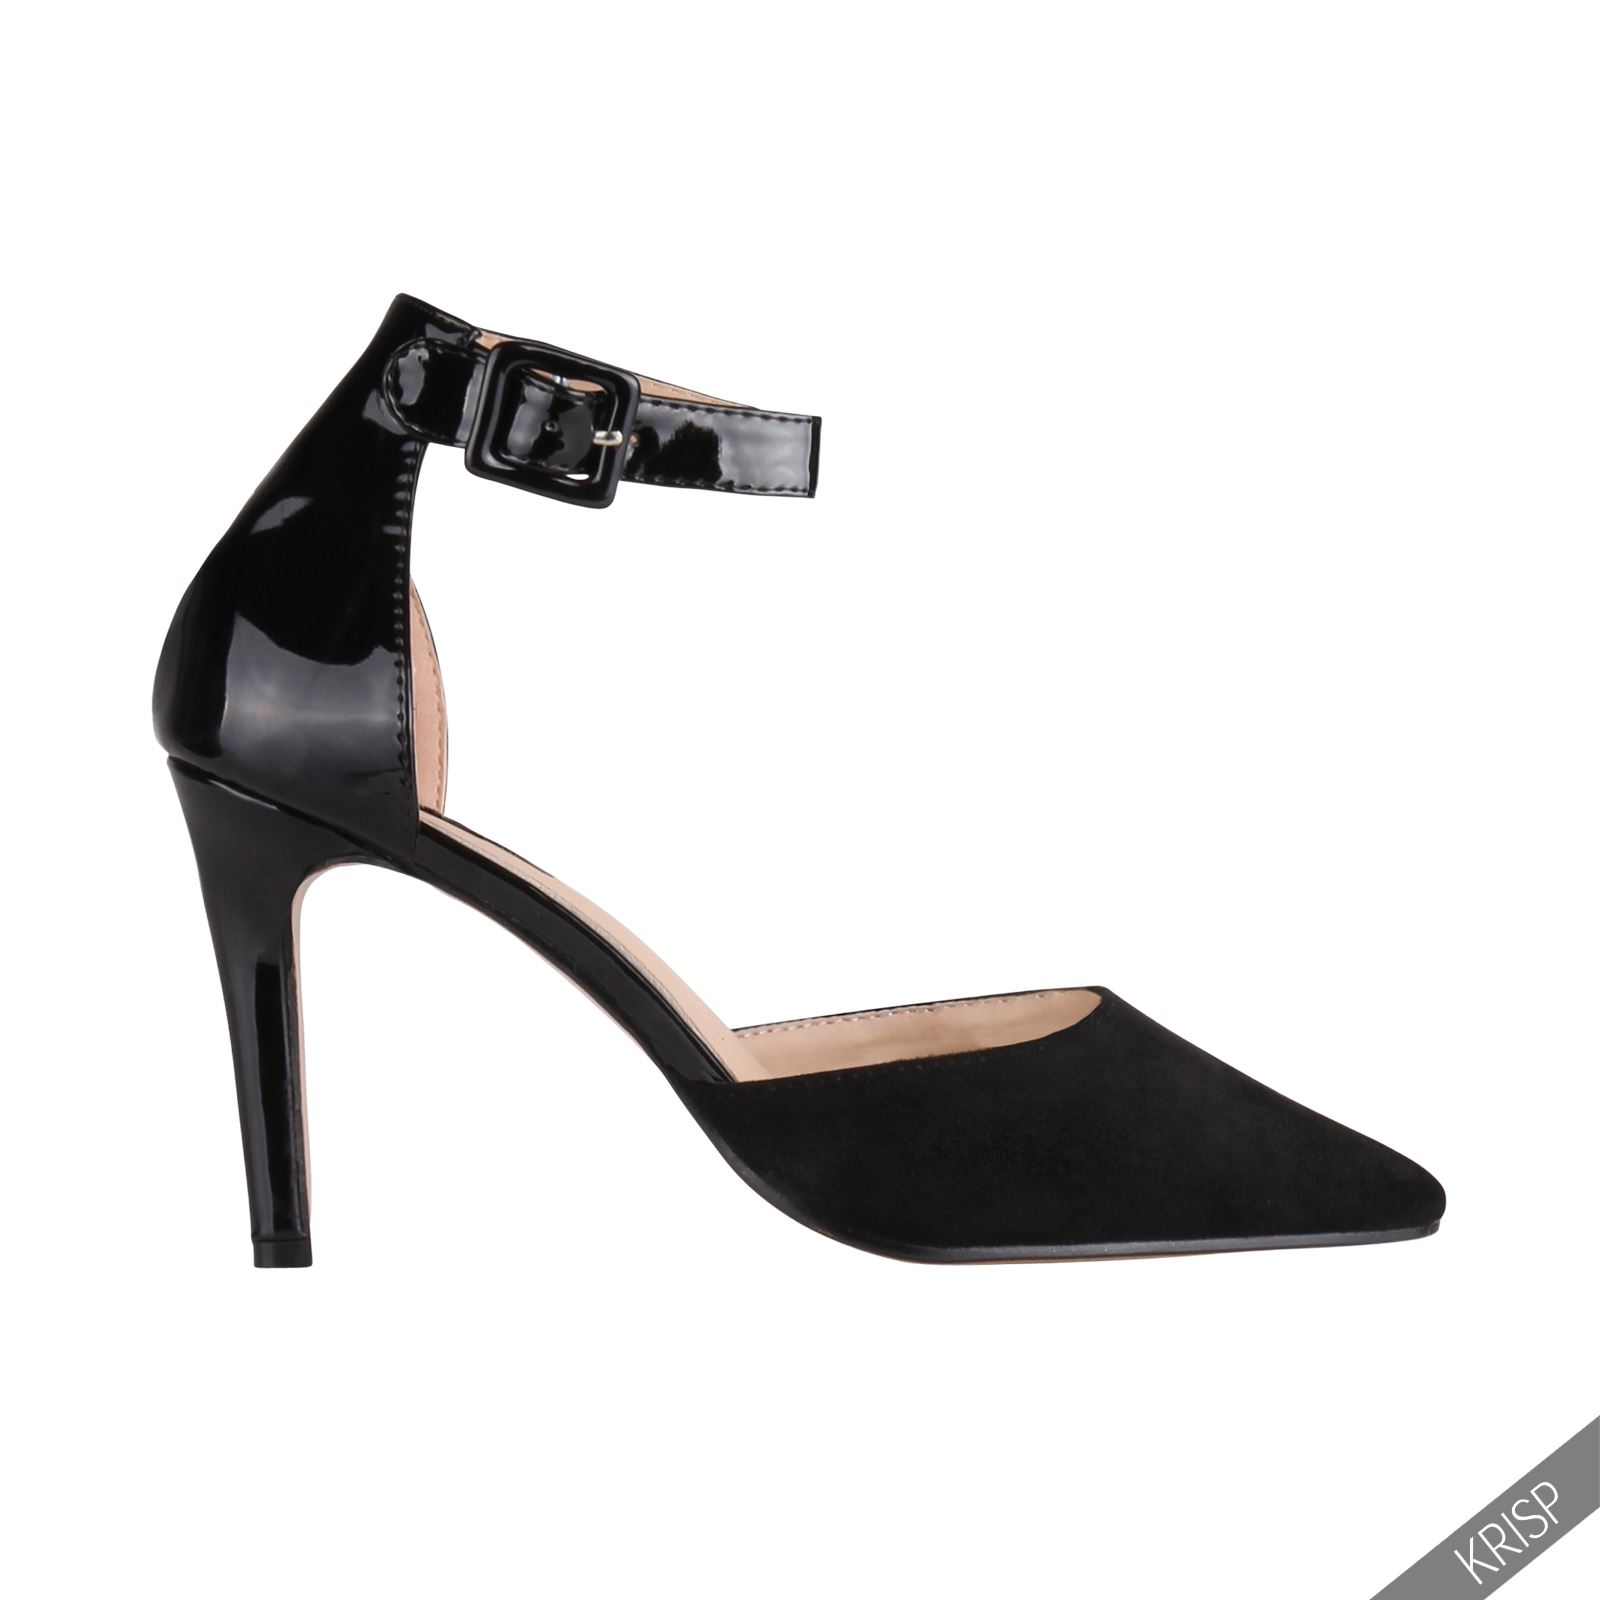 Ankle Strap Heels. Why pay high prices for ladies designer heels when you can binge buy all the styles you love at Tobi? We carry all kinds of designs, in the newest formal and casual styles!